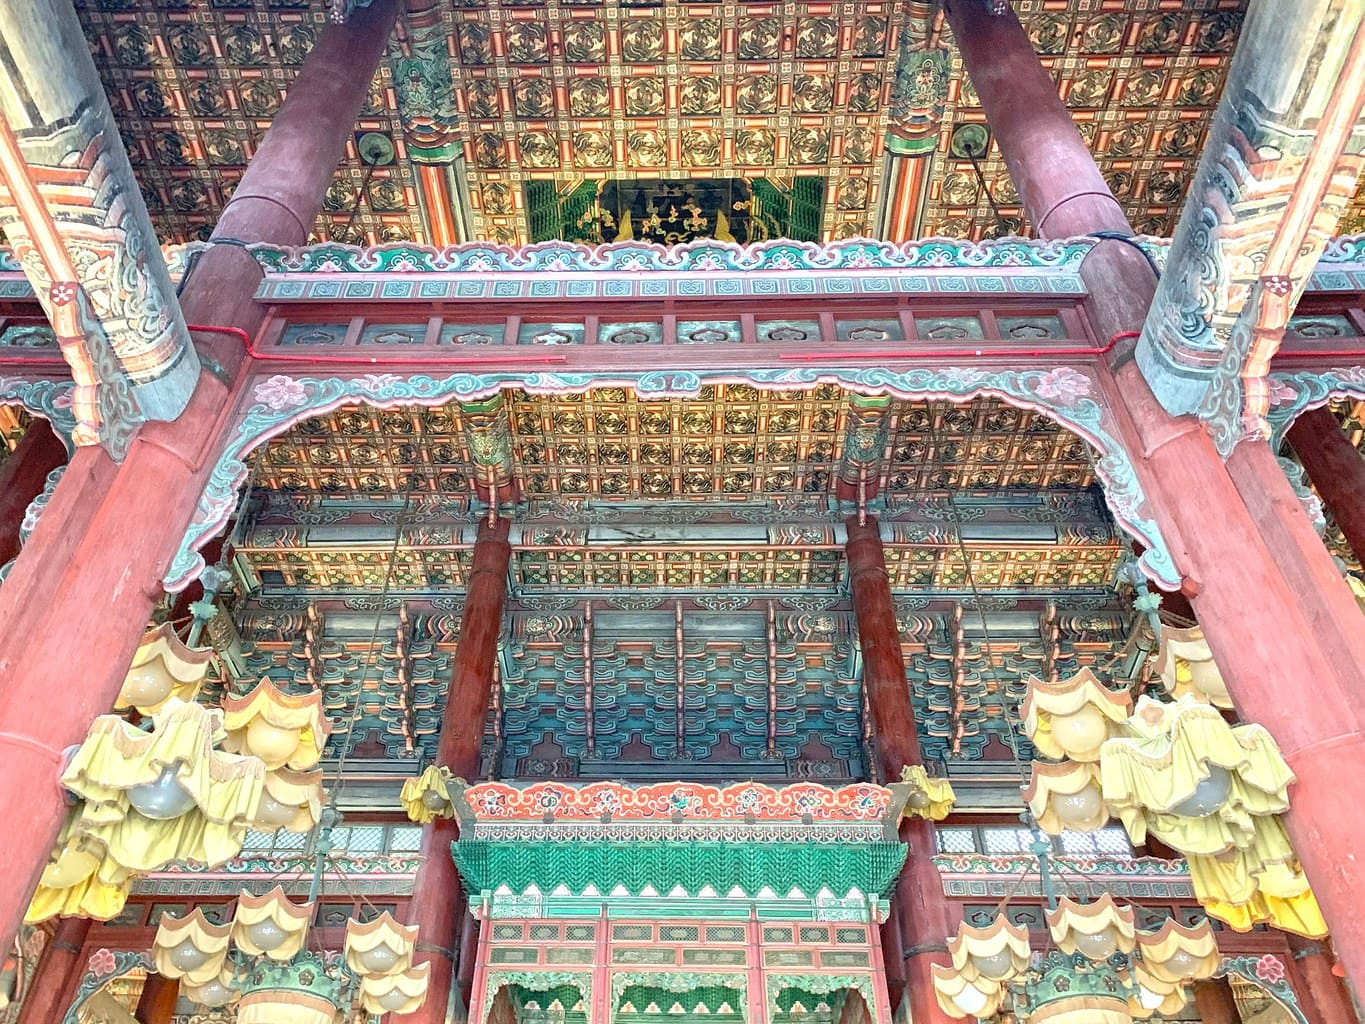 The intricate ceiling at Injeongjeon